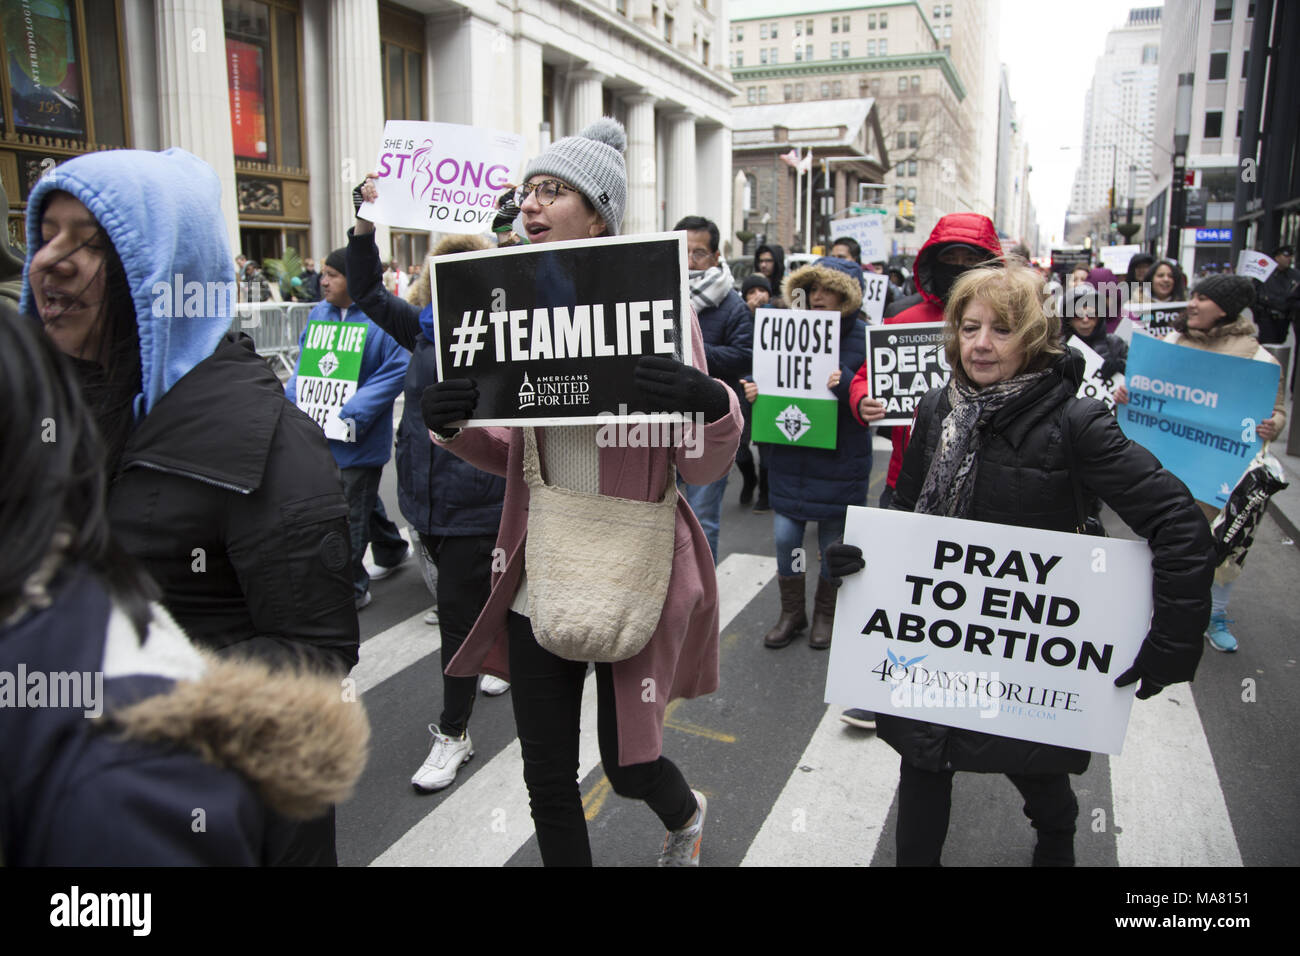 International Gift Of Life annual rally and walk of  Pro-Life groups & individuals took place on Palm Sunday March 24, 2018 in lower Manhattan. - Stock Image